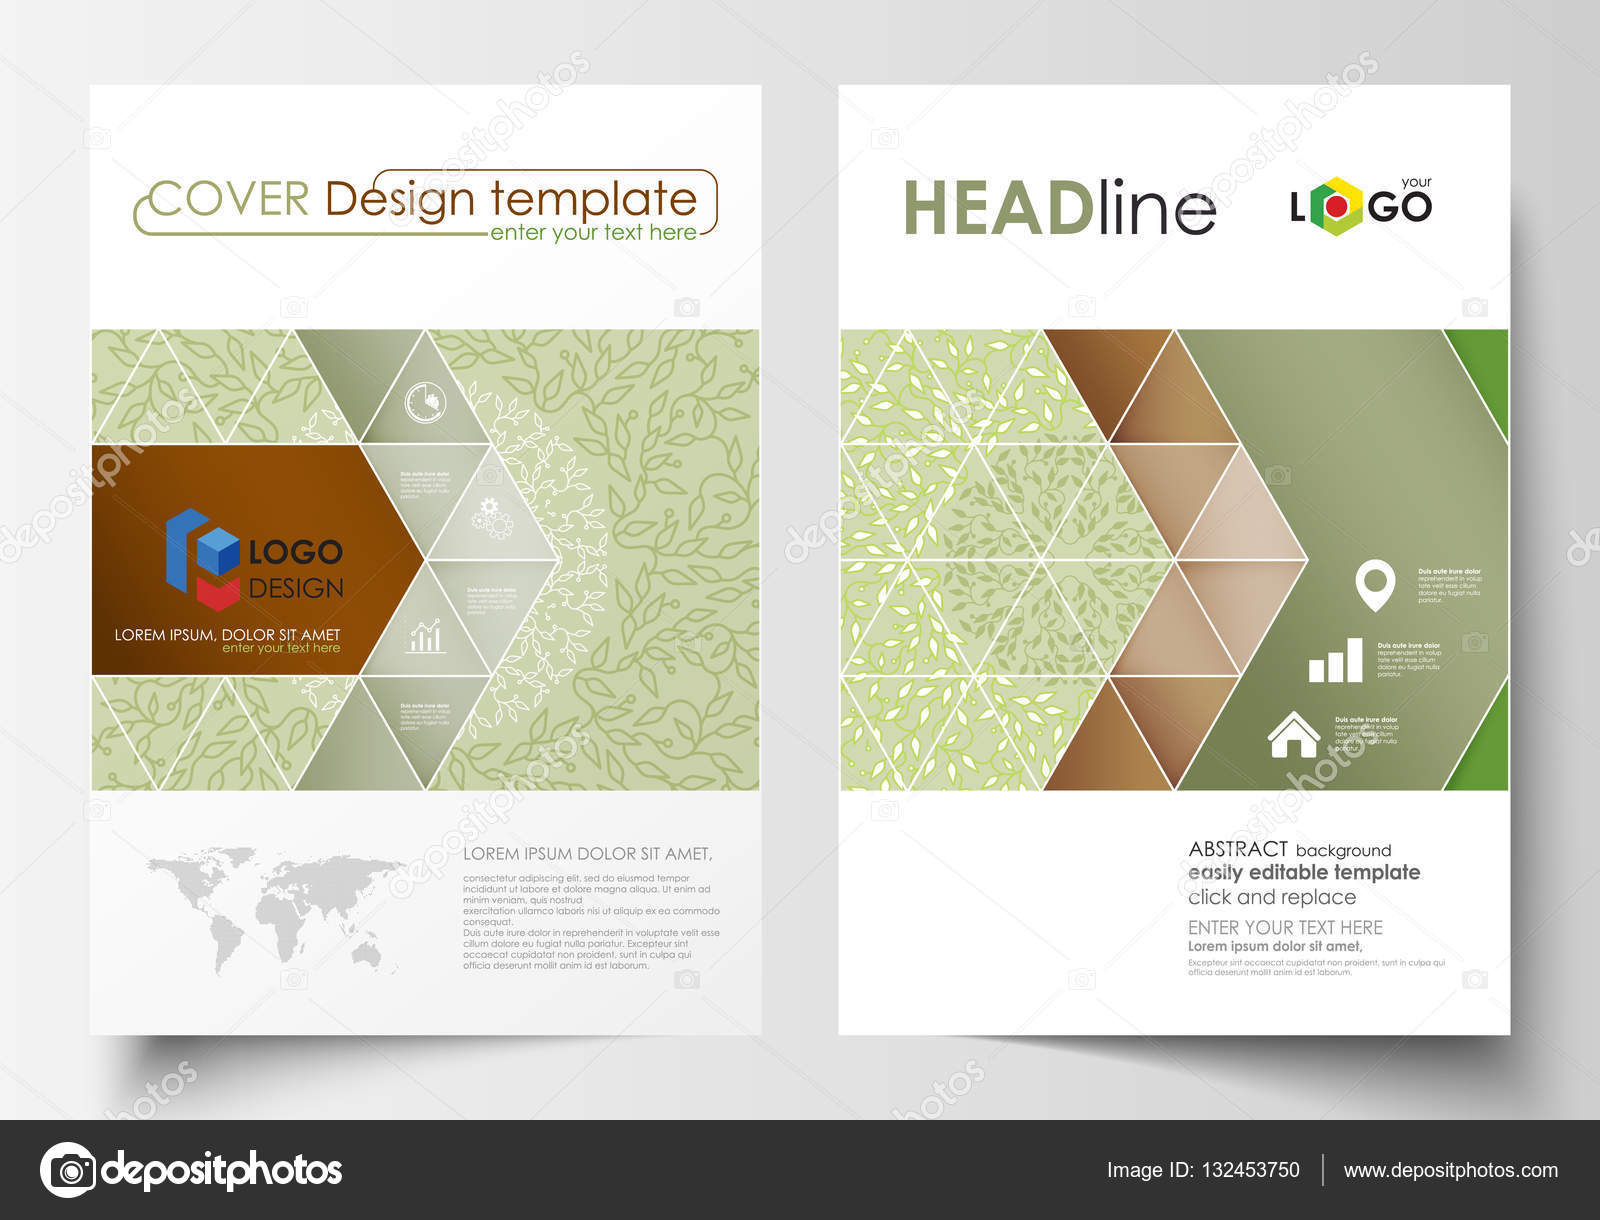 business templates brochure flyer annual report cover design business templates for brochure magazine flyer booklet or annual report cover design template easy editable vector abstract flat layout in a4 size